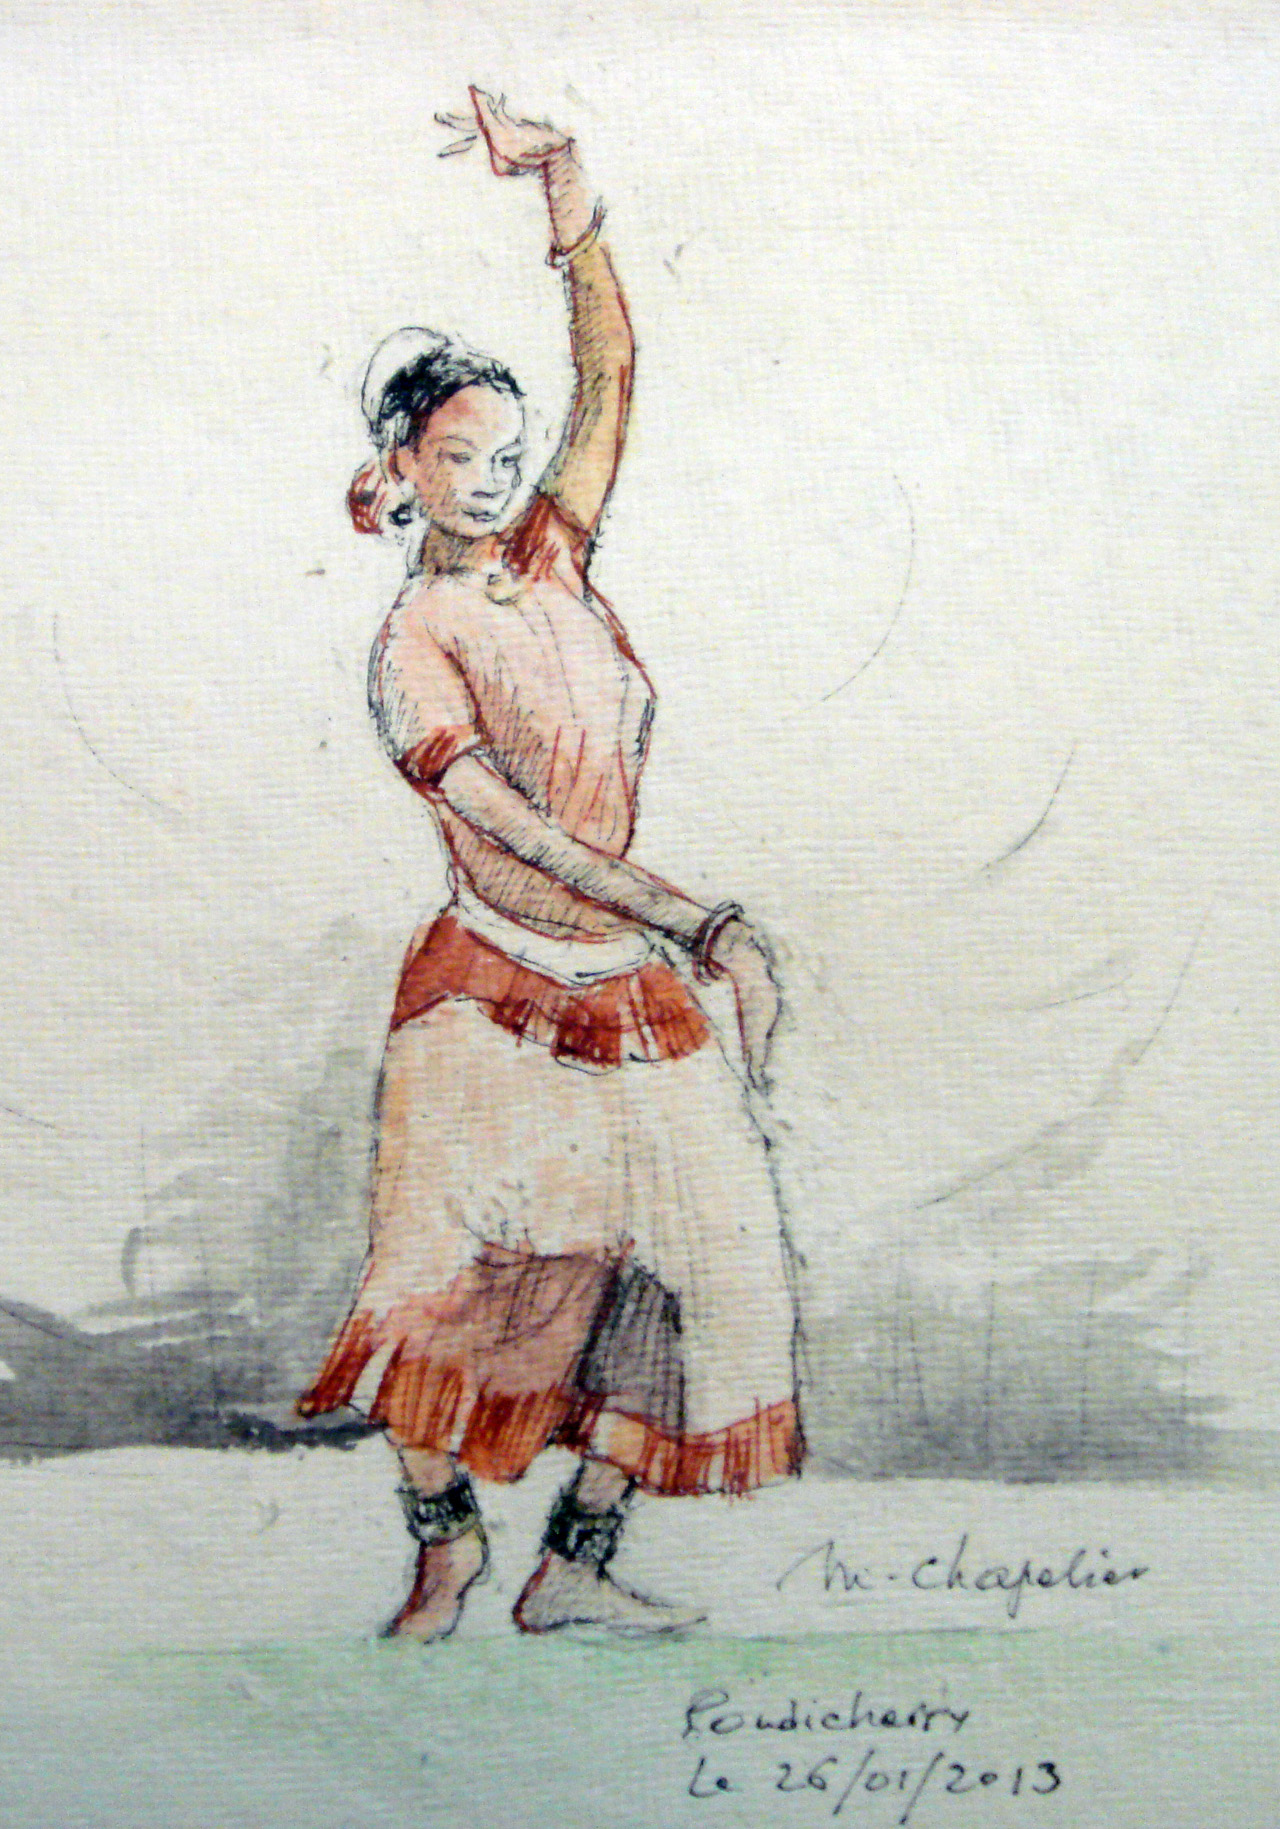 Danseuse à Pondicherry